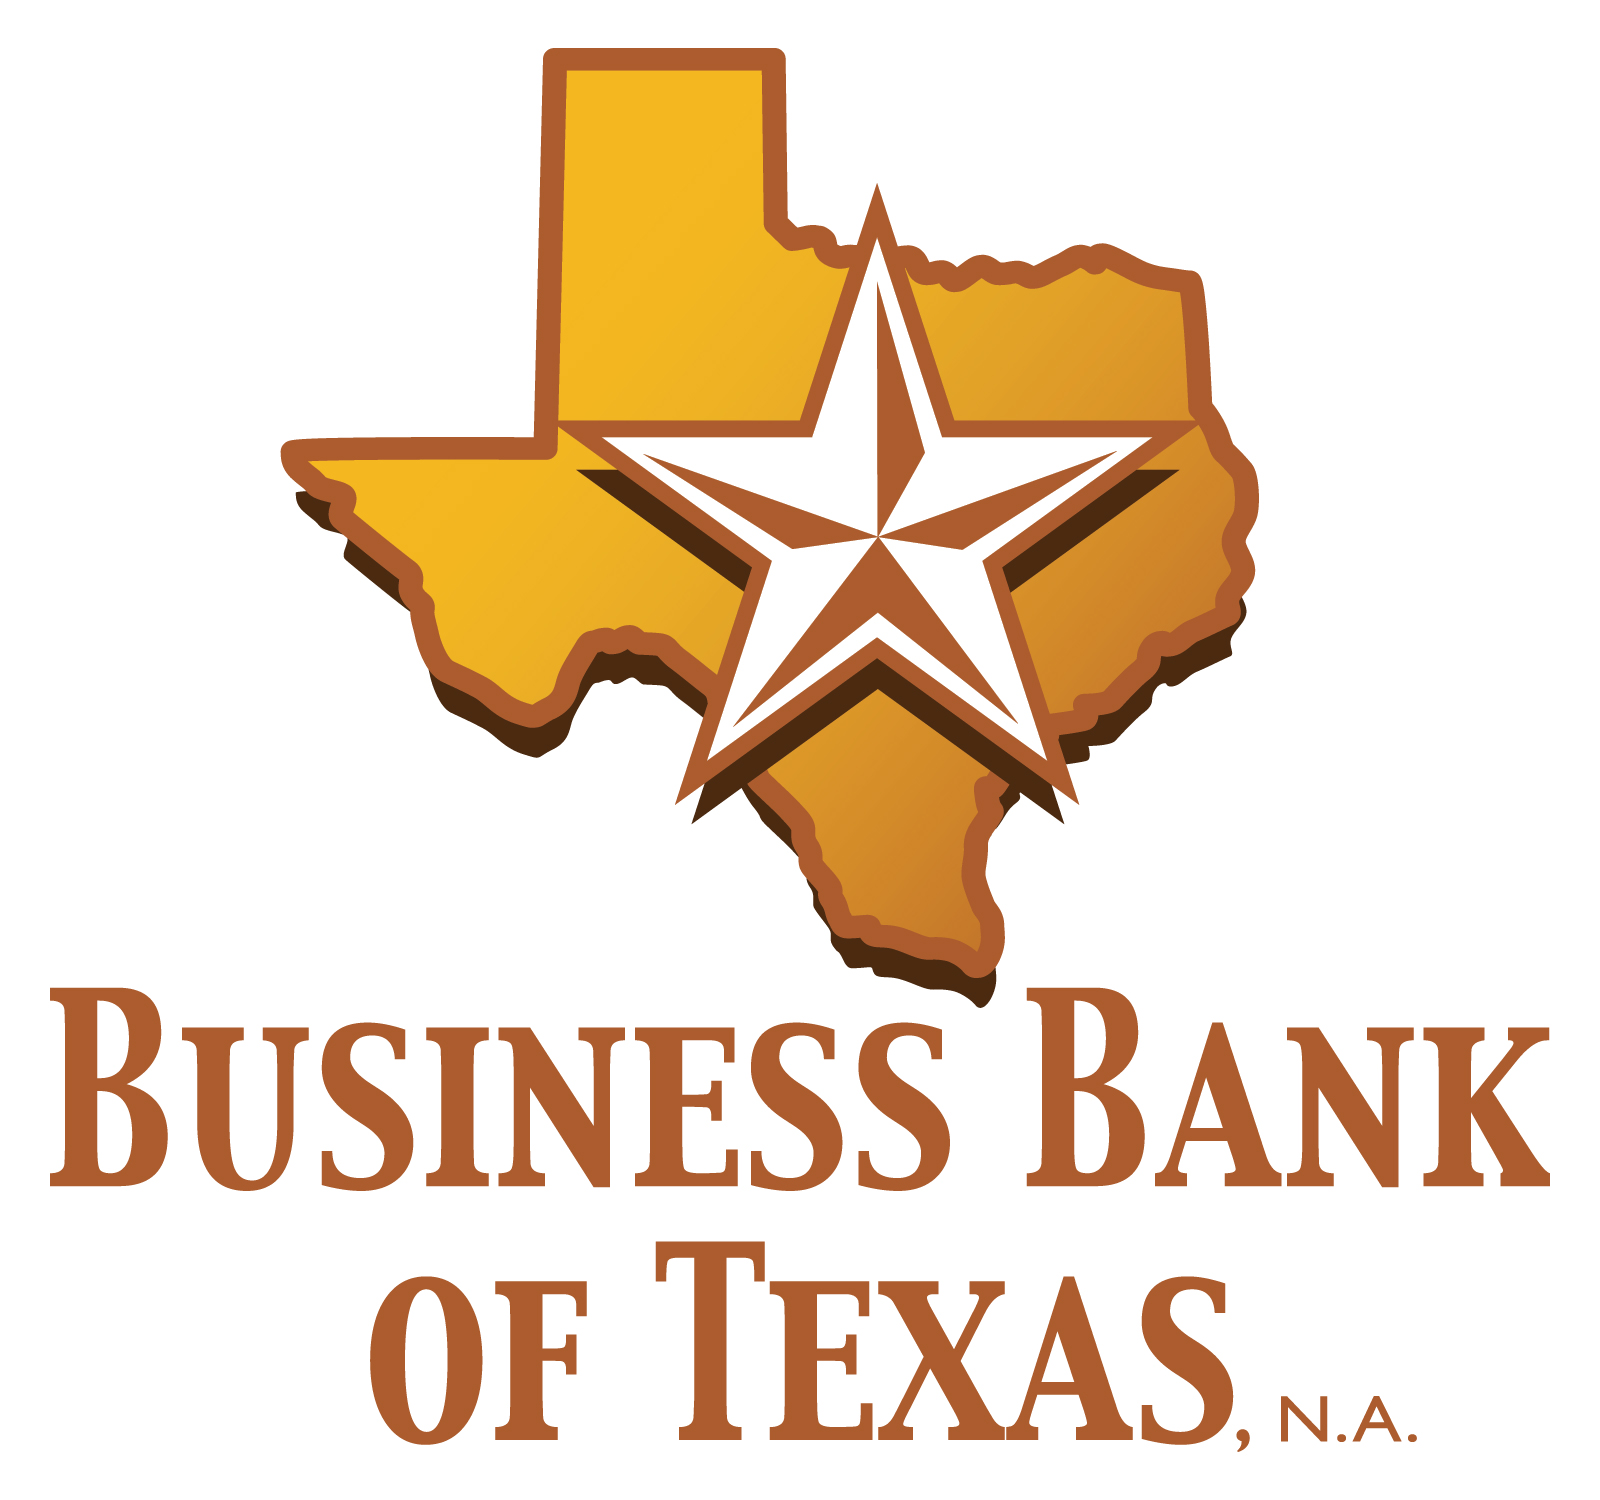 Better Bank of Texas